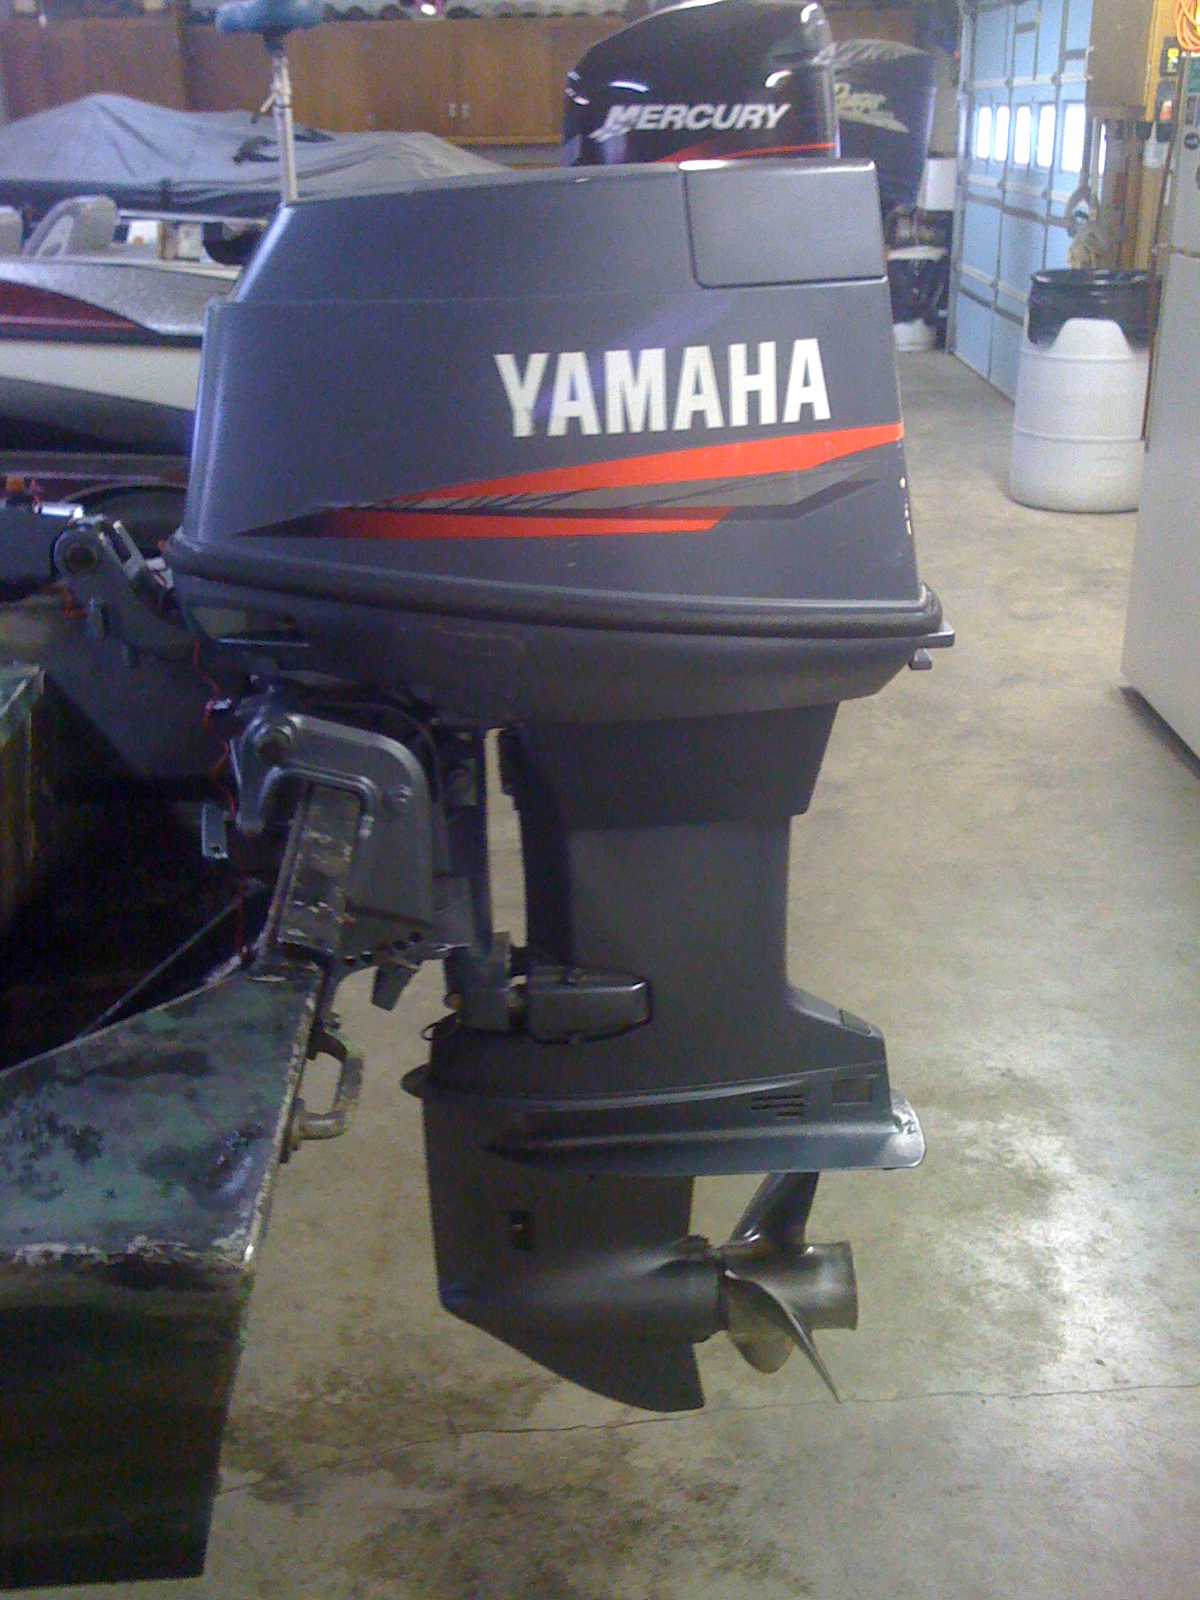 Sclakes Com View Topic 1999 Yamaha 40 Hp Short Shaft